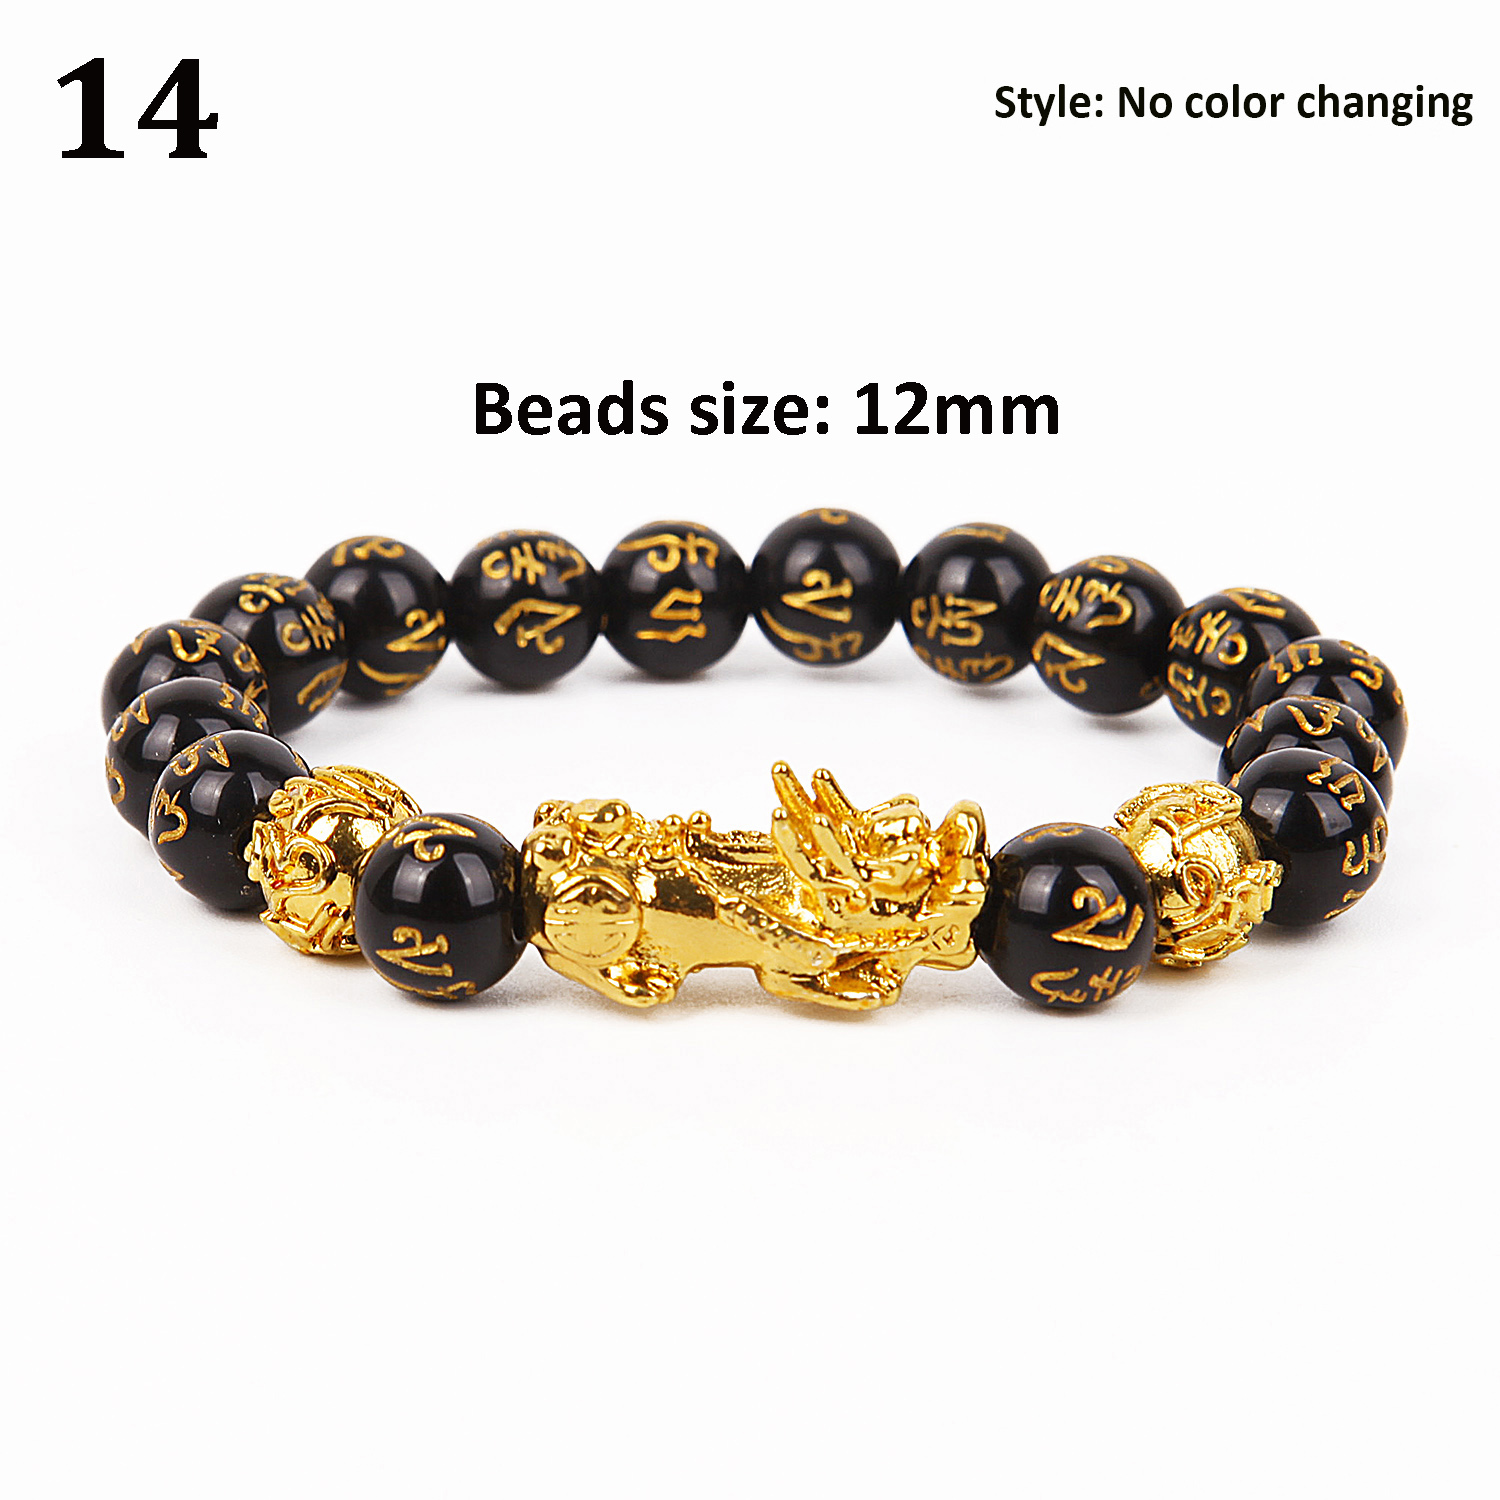 14 (Beads size 12mm)